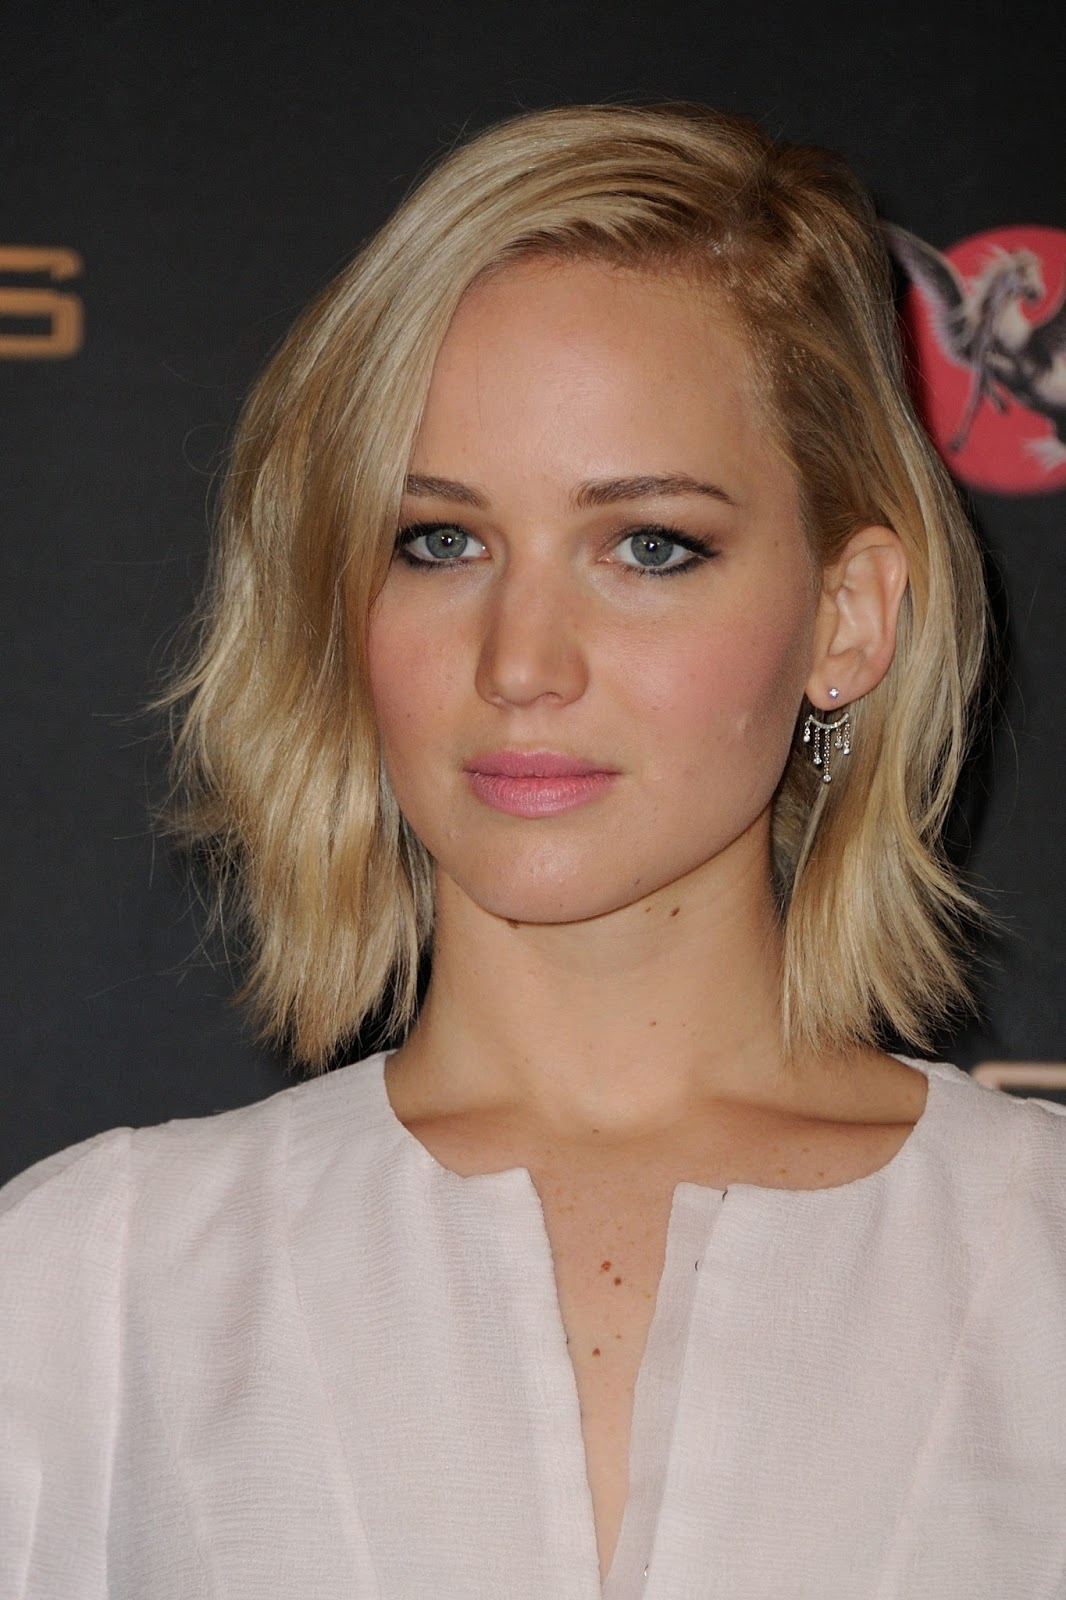 Jennifer Lawrence Makeup Tutorial: Jennifer Lawrence Fansite: HQ PHOTOS: Jennifer Lawrence